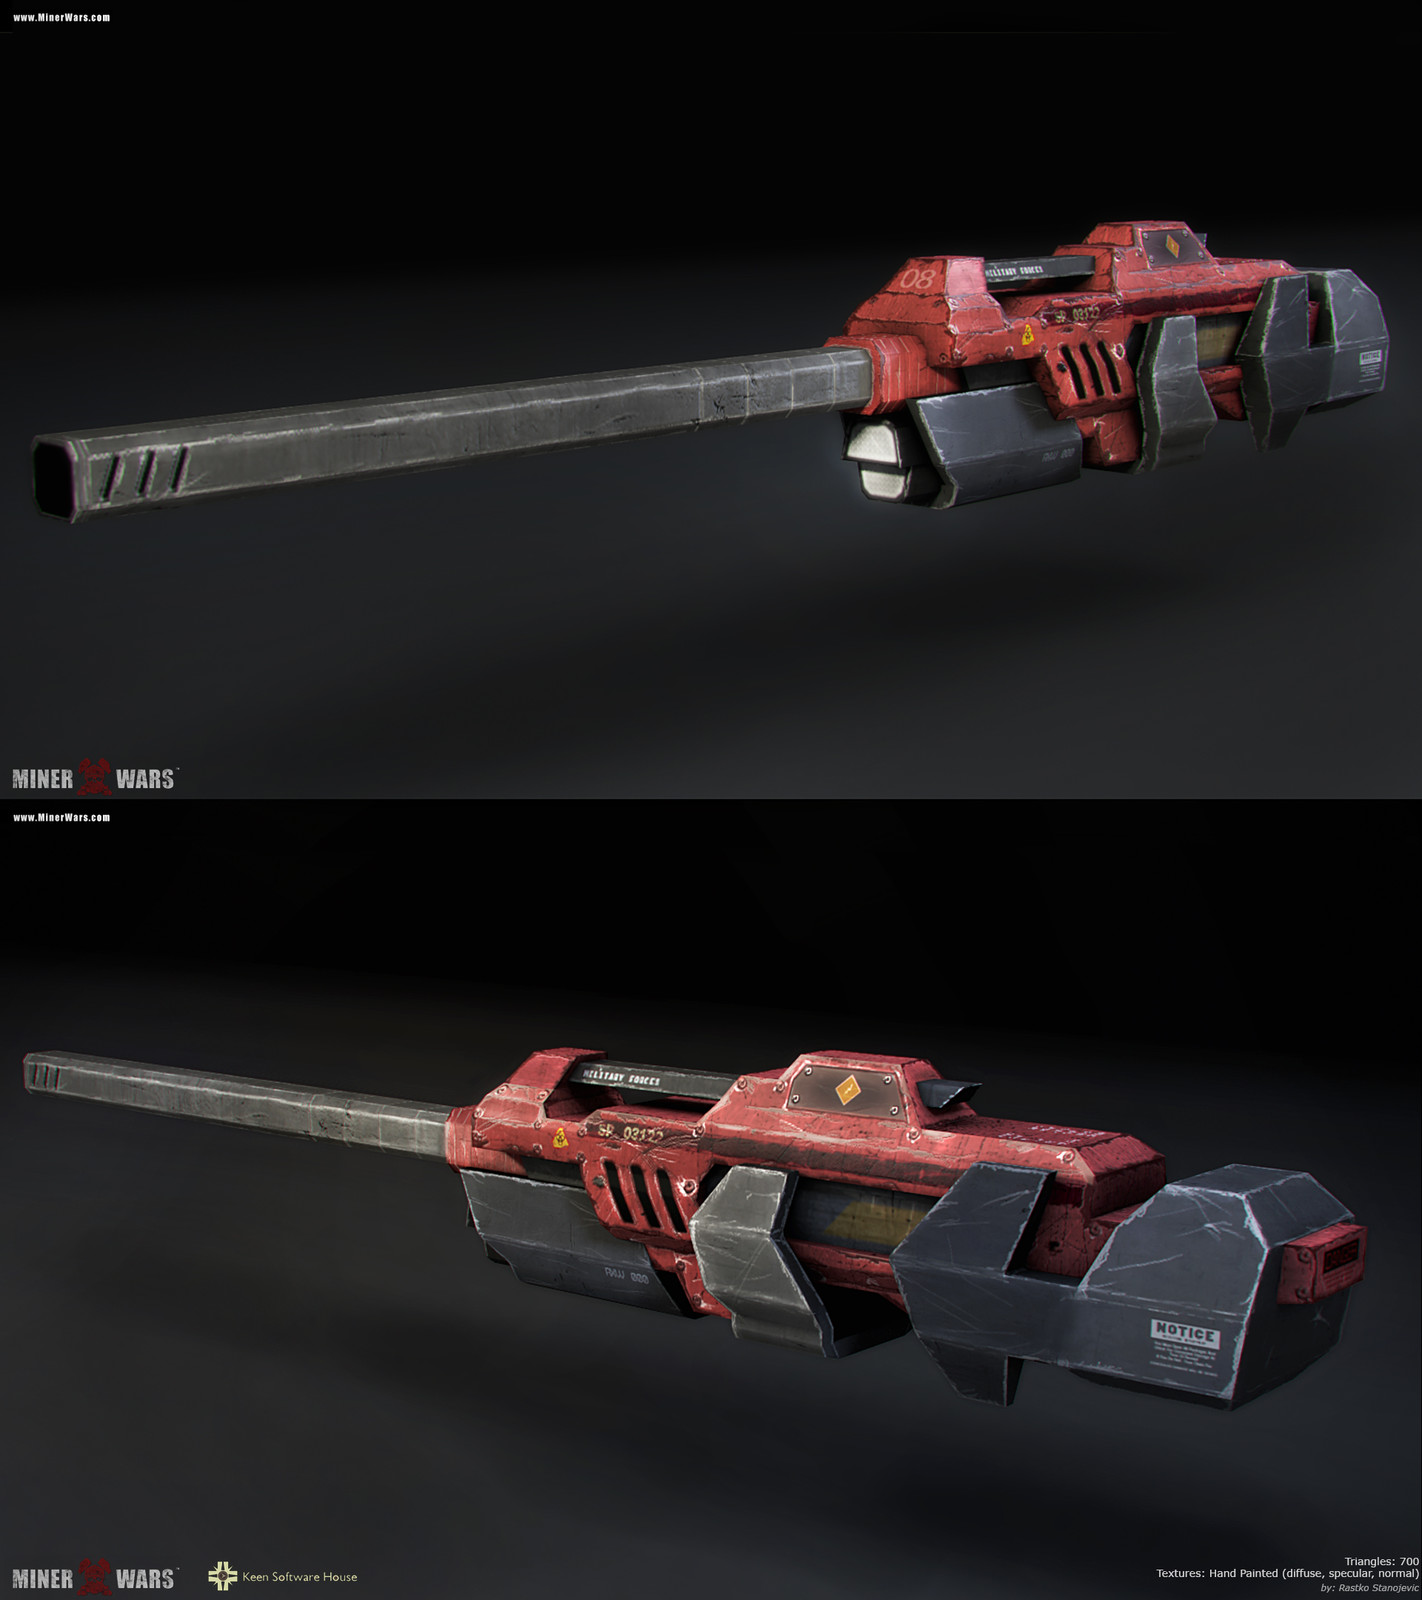 700 tris, hand painted textures